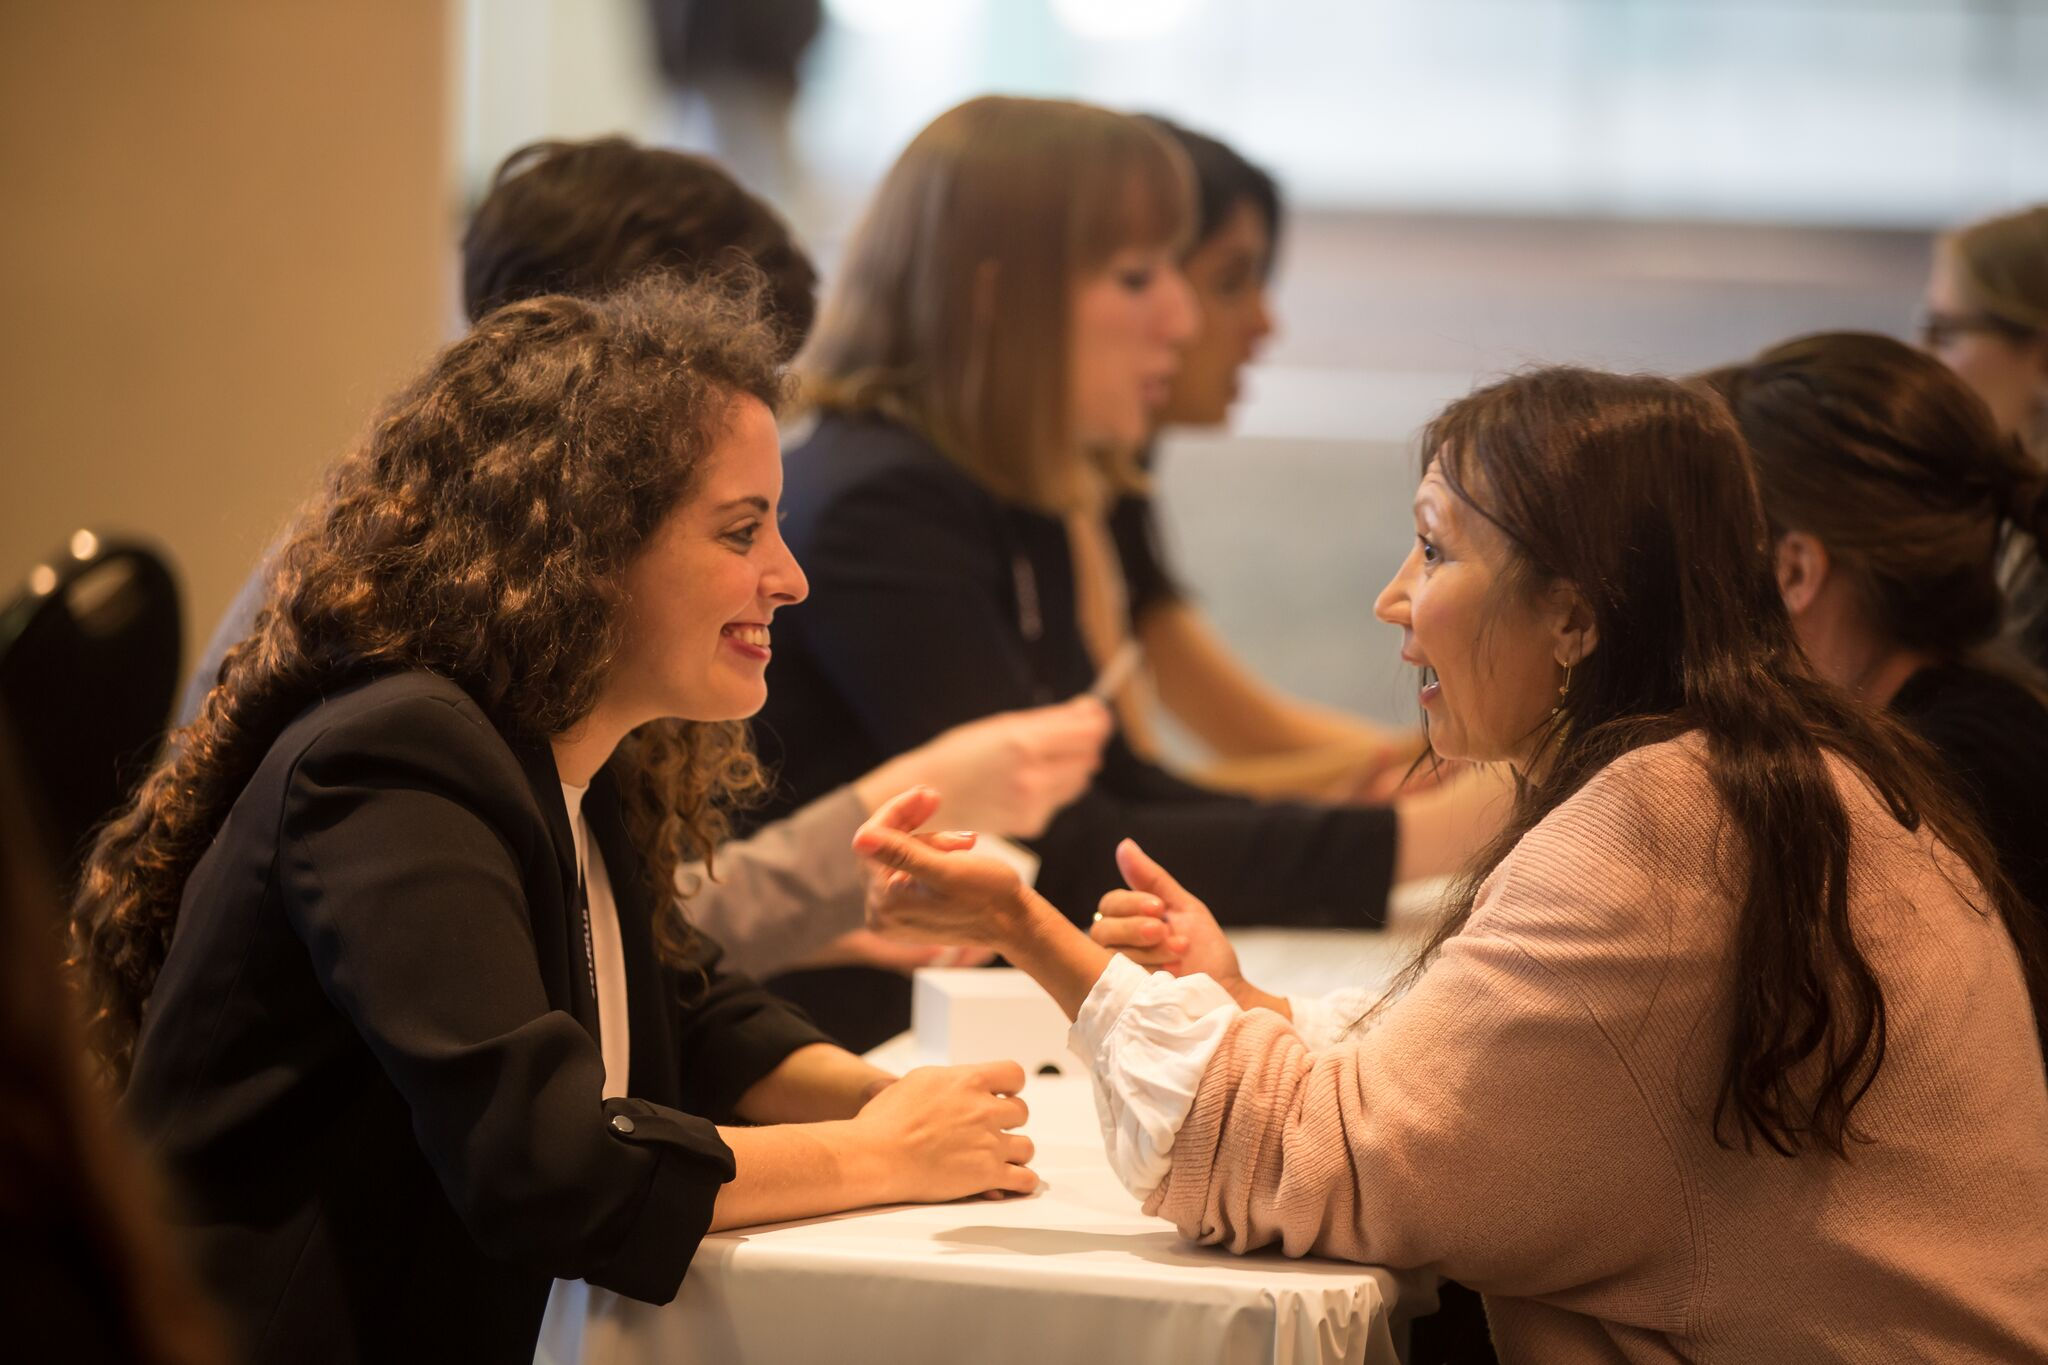 Two women getting to know each other at Speed Networking.